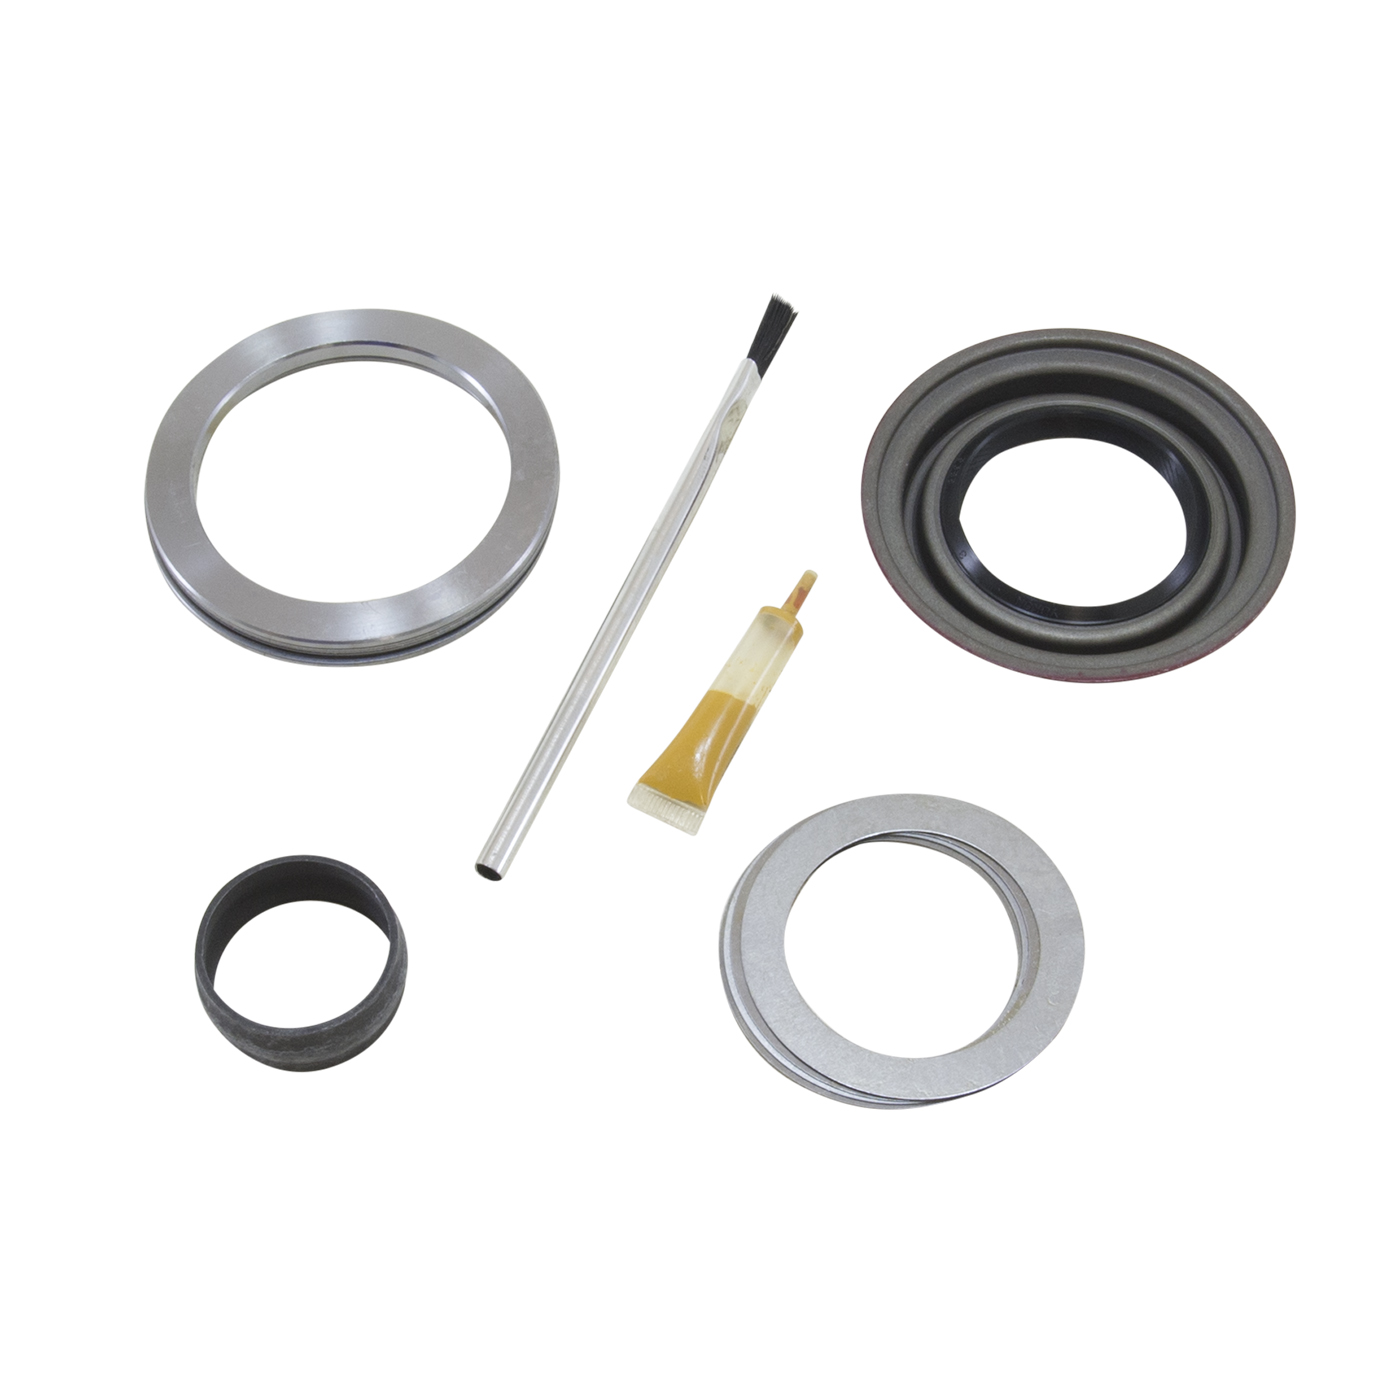 MK GM9.5-12B - Yukon minor install kit for 2014 & up GM 9.5